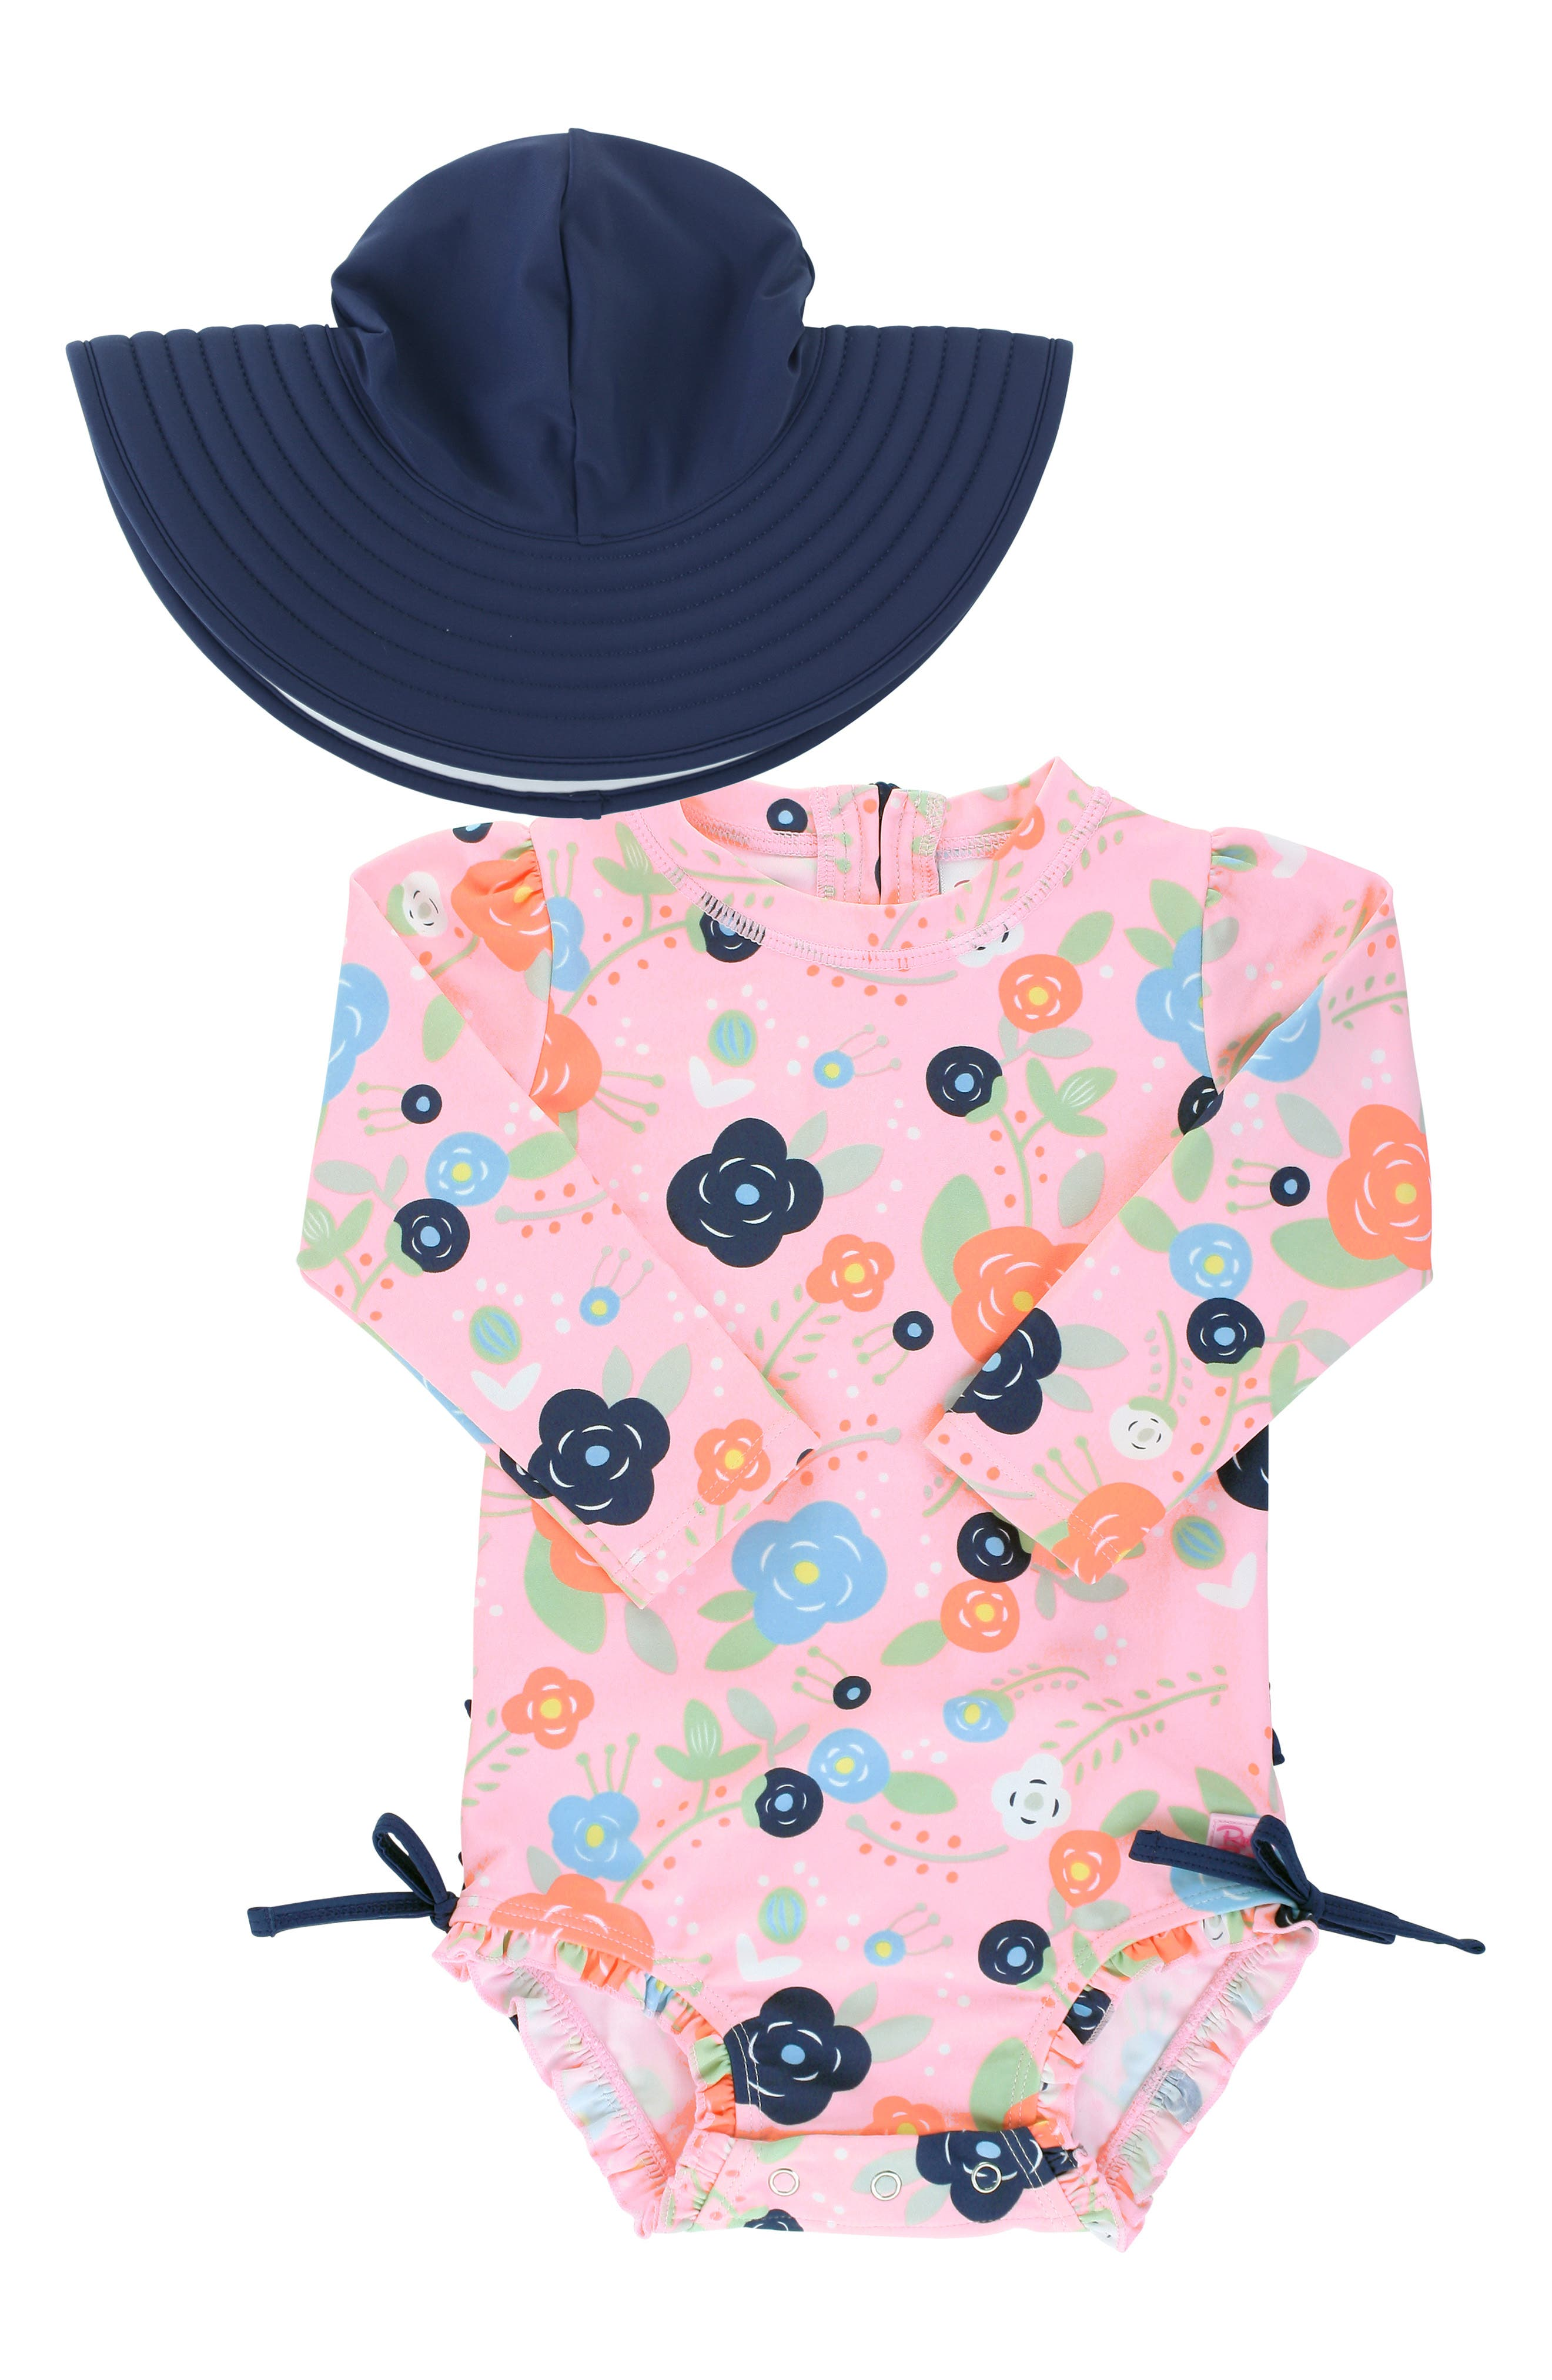 Pretty flowers and botanicals blossom over this ruffle-trimmed rashguard swimsuit paired with an adorable floppy hat for extra sun protection. Style Name: Rufflebutts Bouncing Blooms One-Piece Rashguard Swimsuit & Hat Set (Baby). Style Number: 5938575. Available in stores.